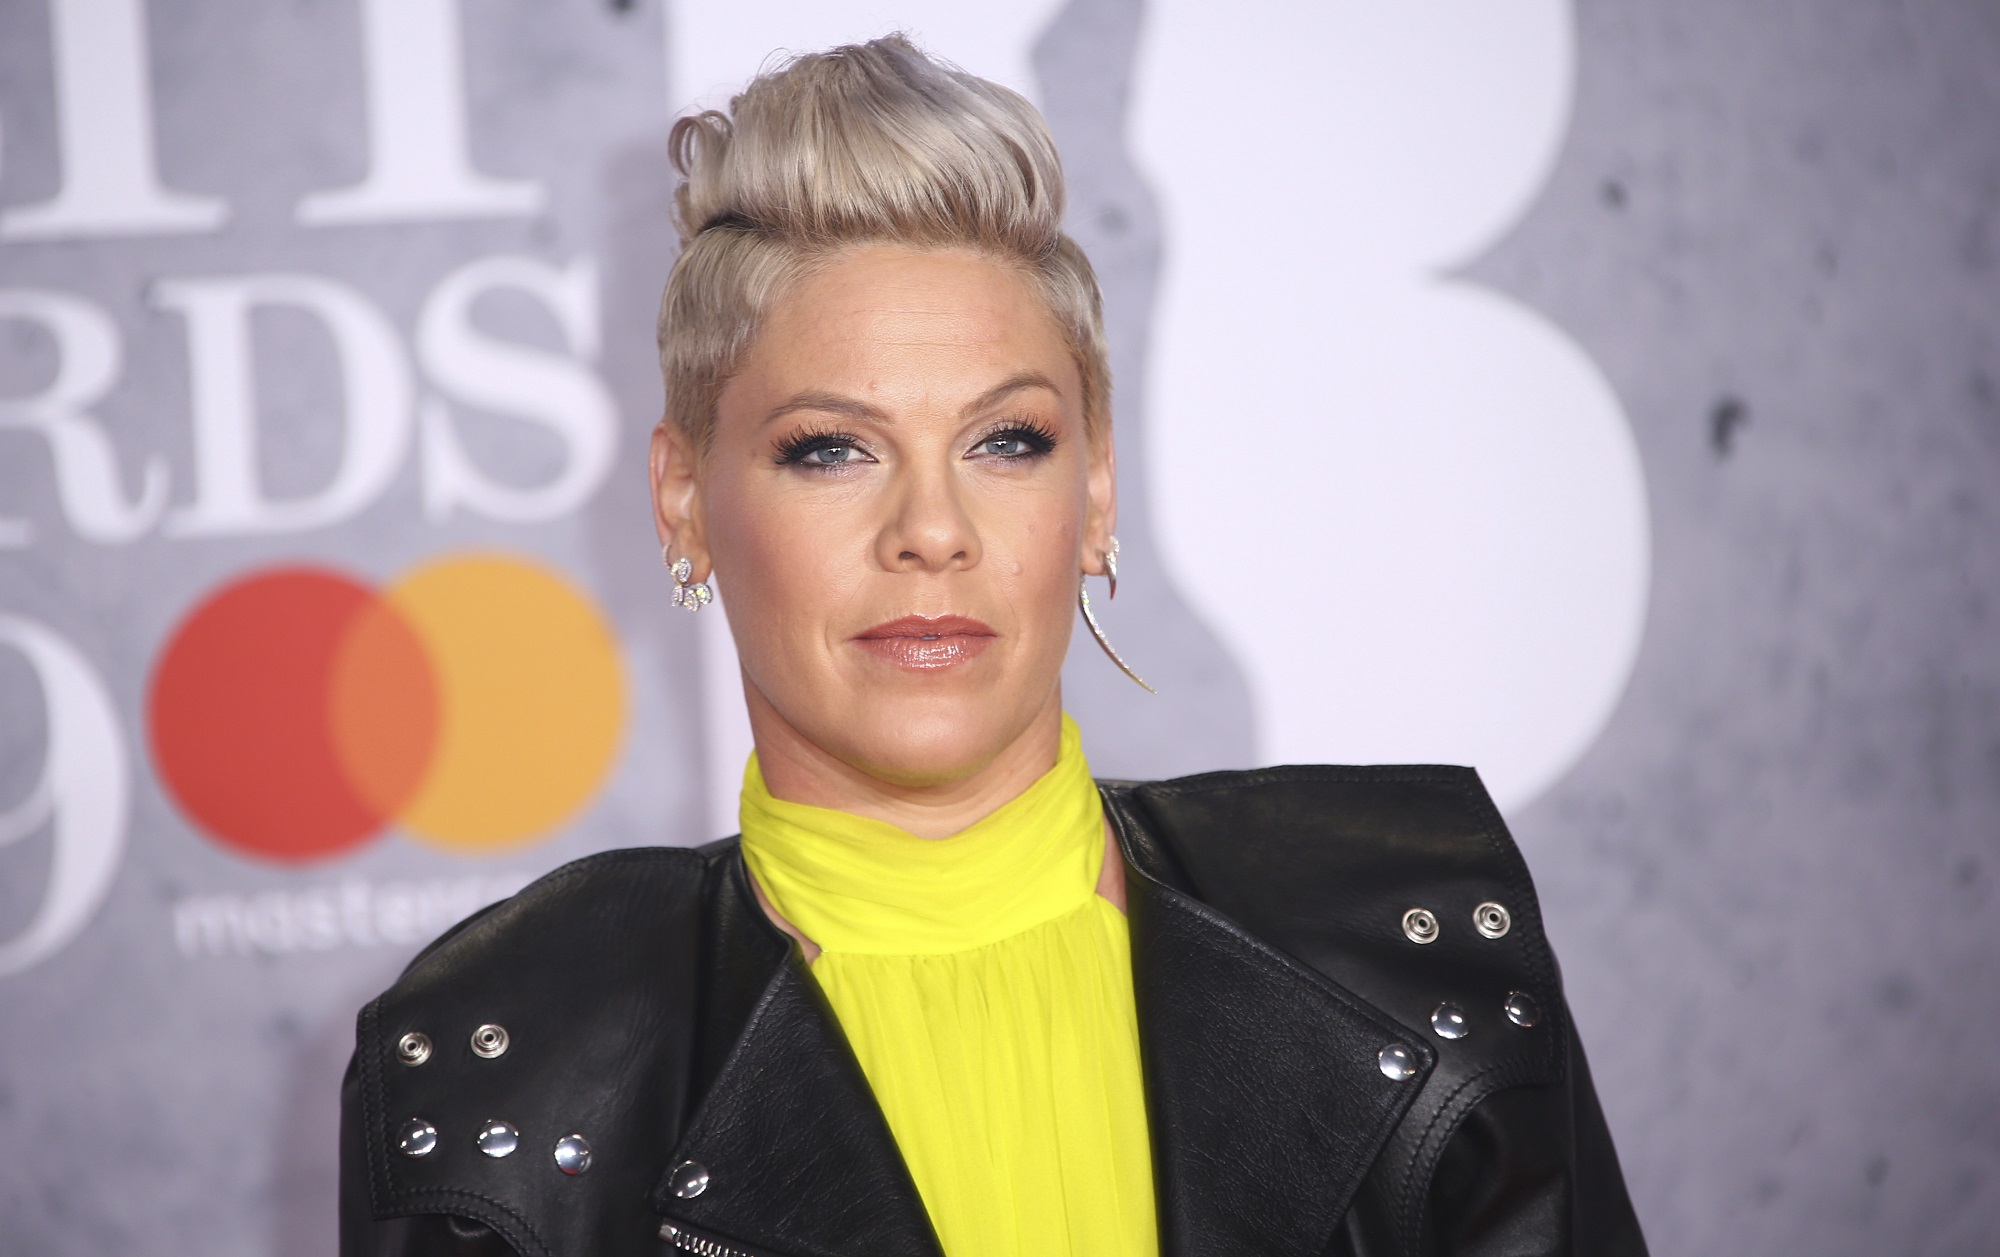 P!NK cuts her hair while drinking during coronavirus quarantine